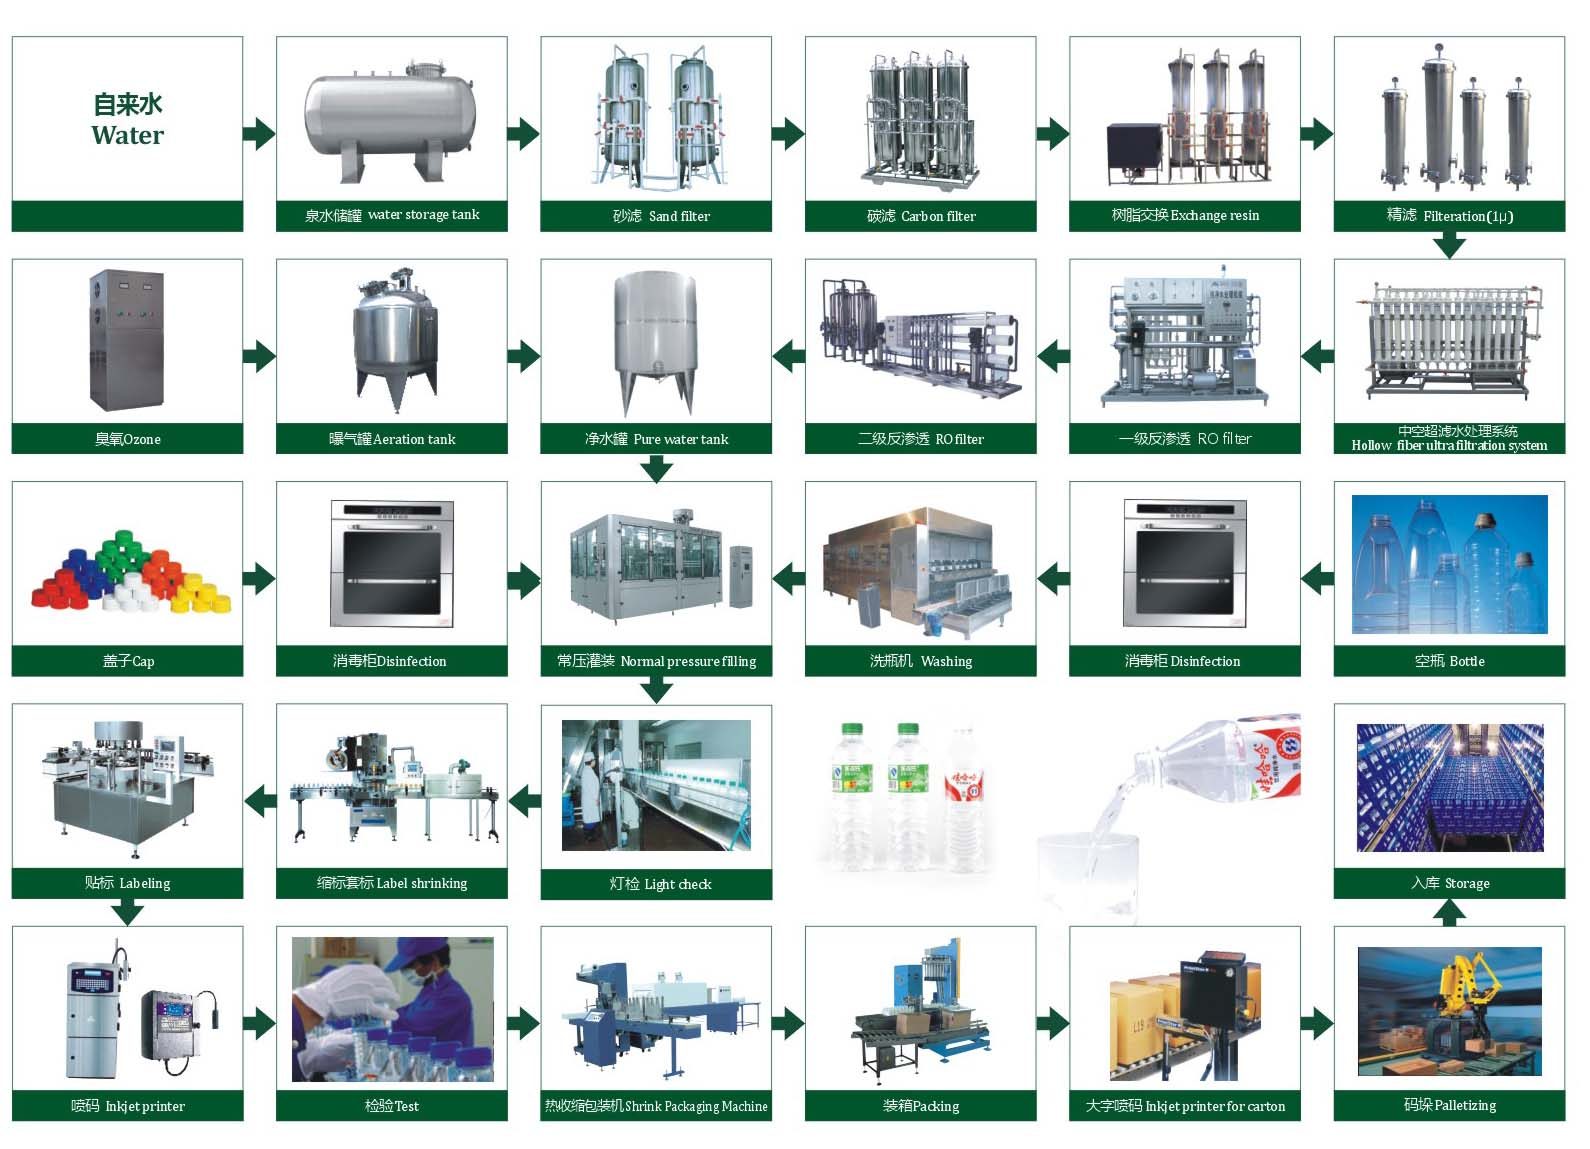 Pure water packing and production flow chart